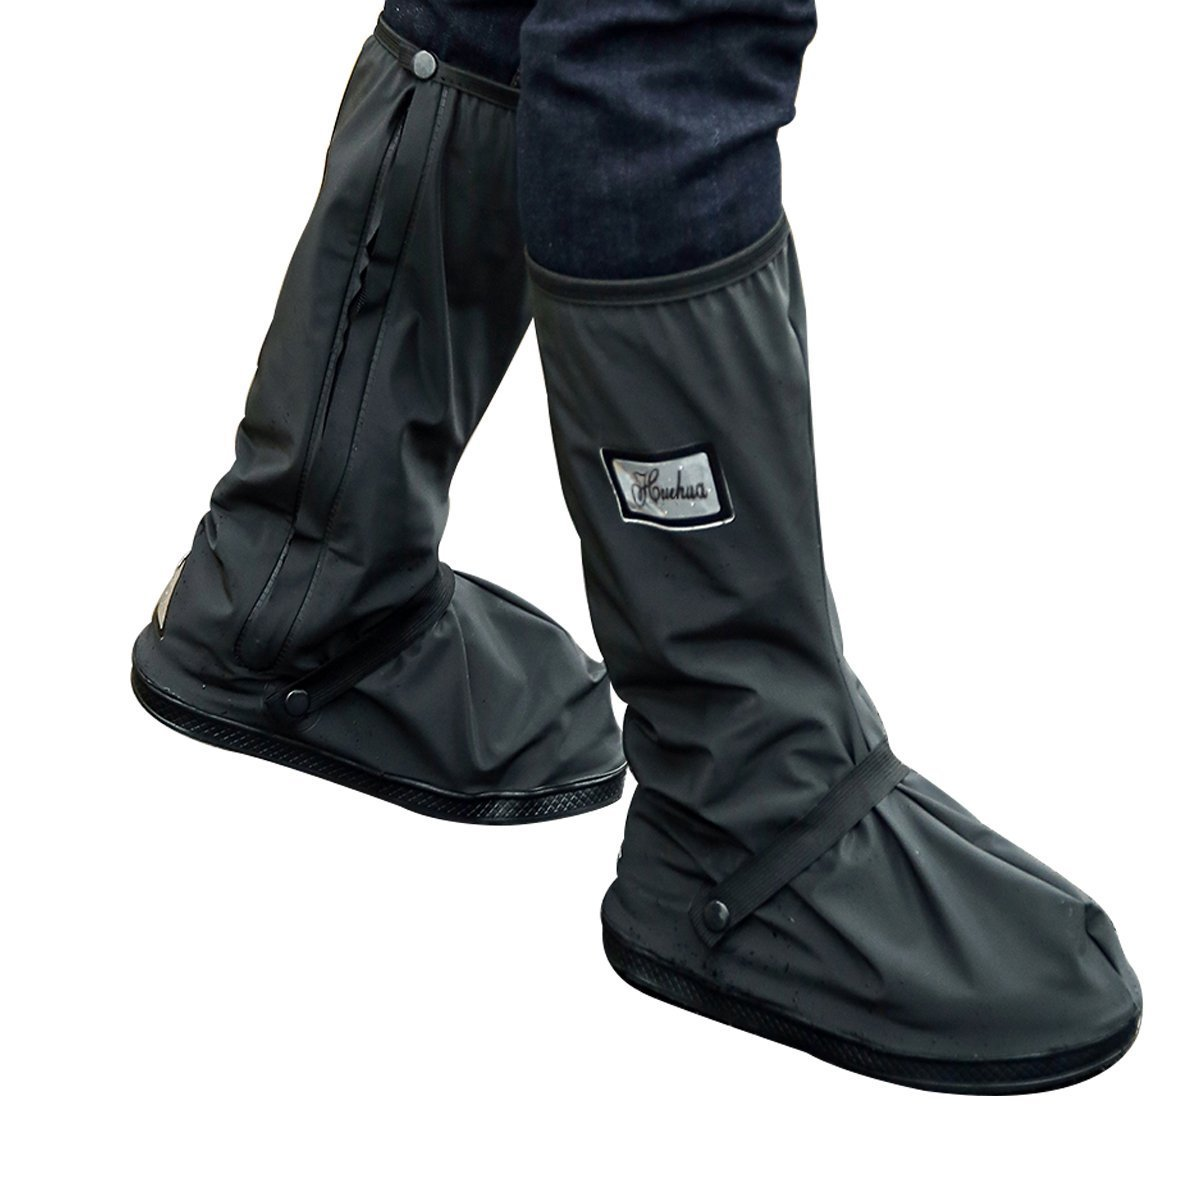 Sharbay Rain Boots Covers, Waterproof Shoes Cover with Sturdy Zippers and Reflective Heels (L) CH-06-08